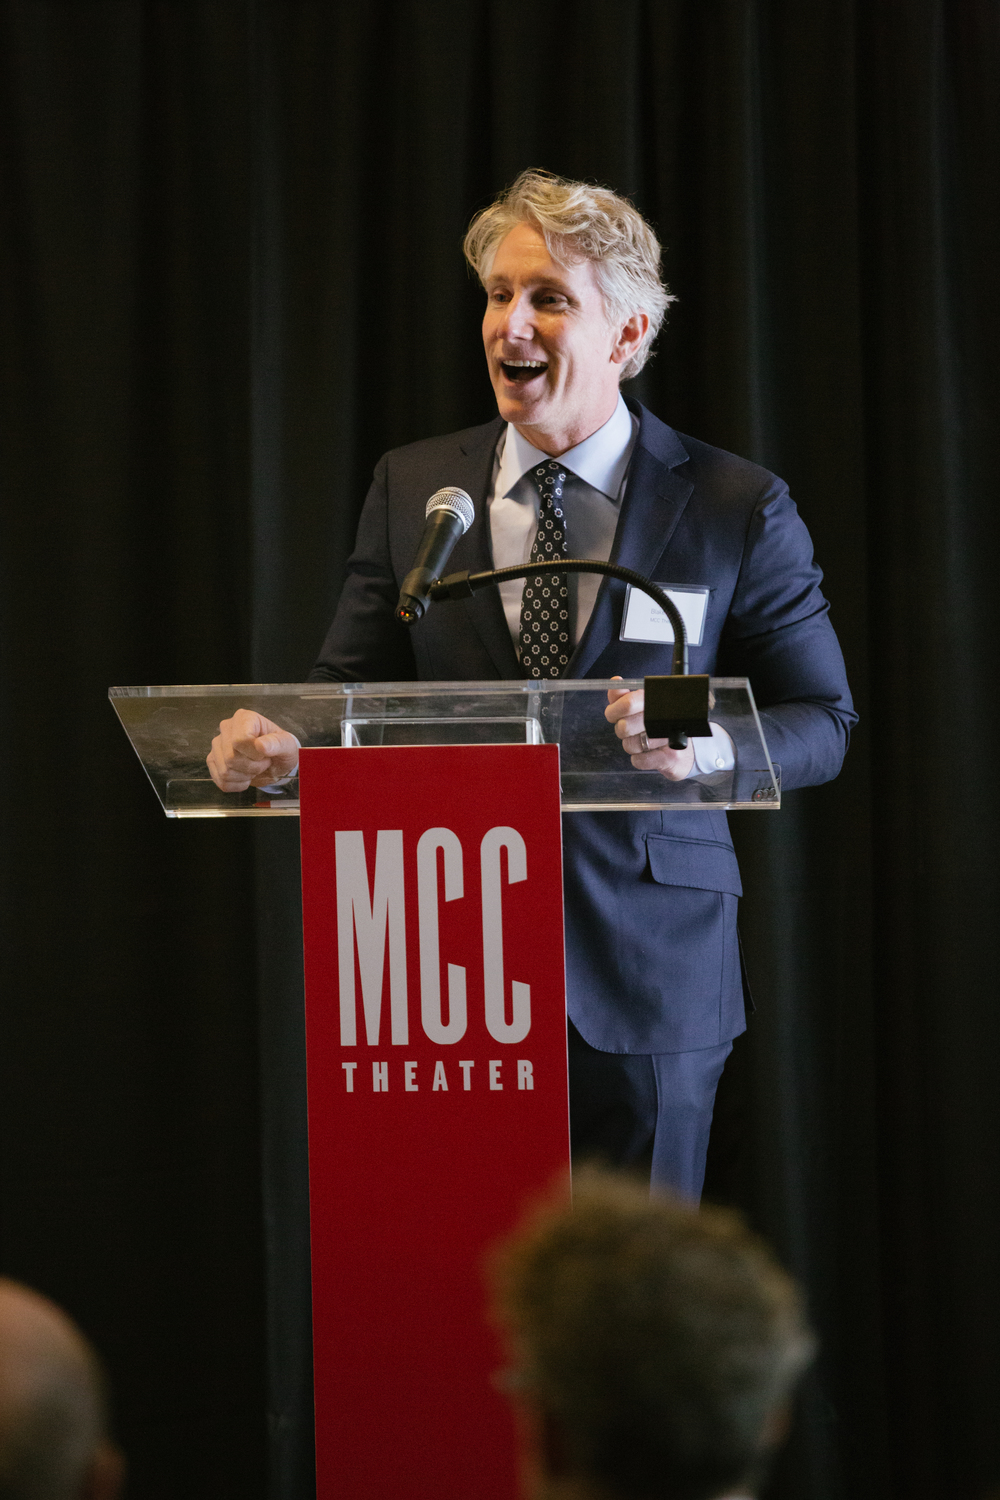 20160322 MCC Theater Groundbreaking_050.jpg